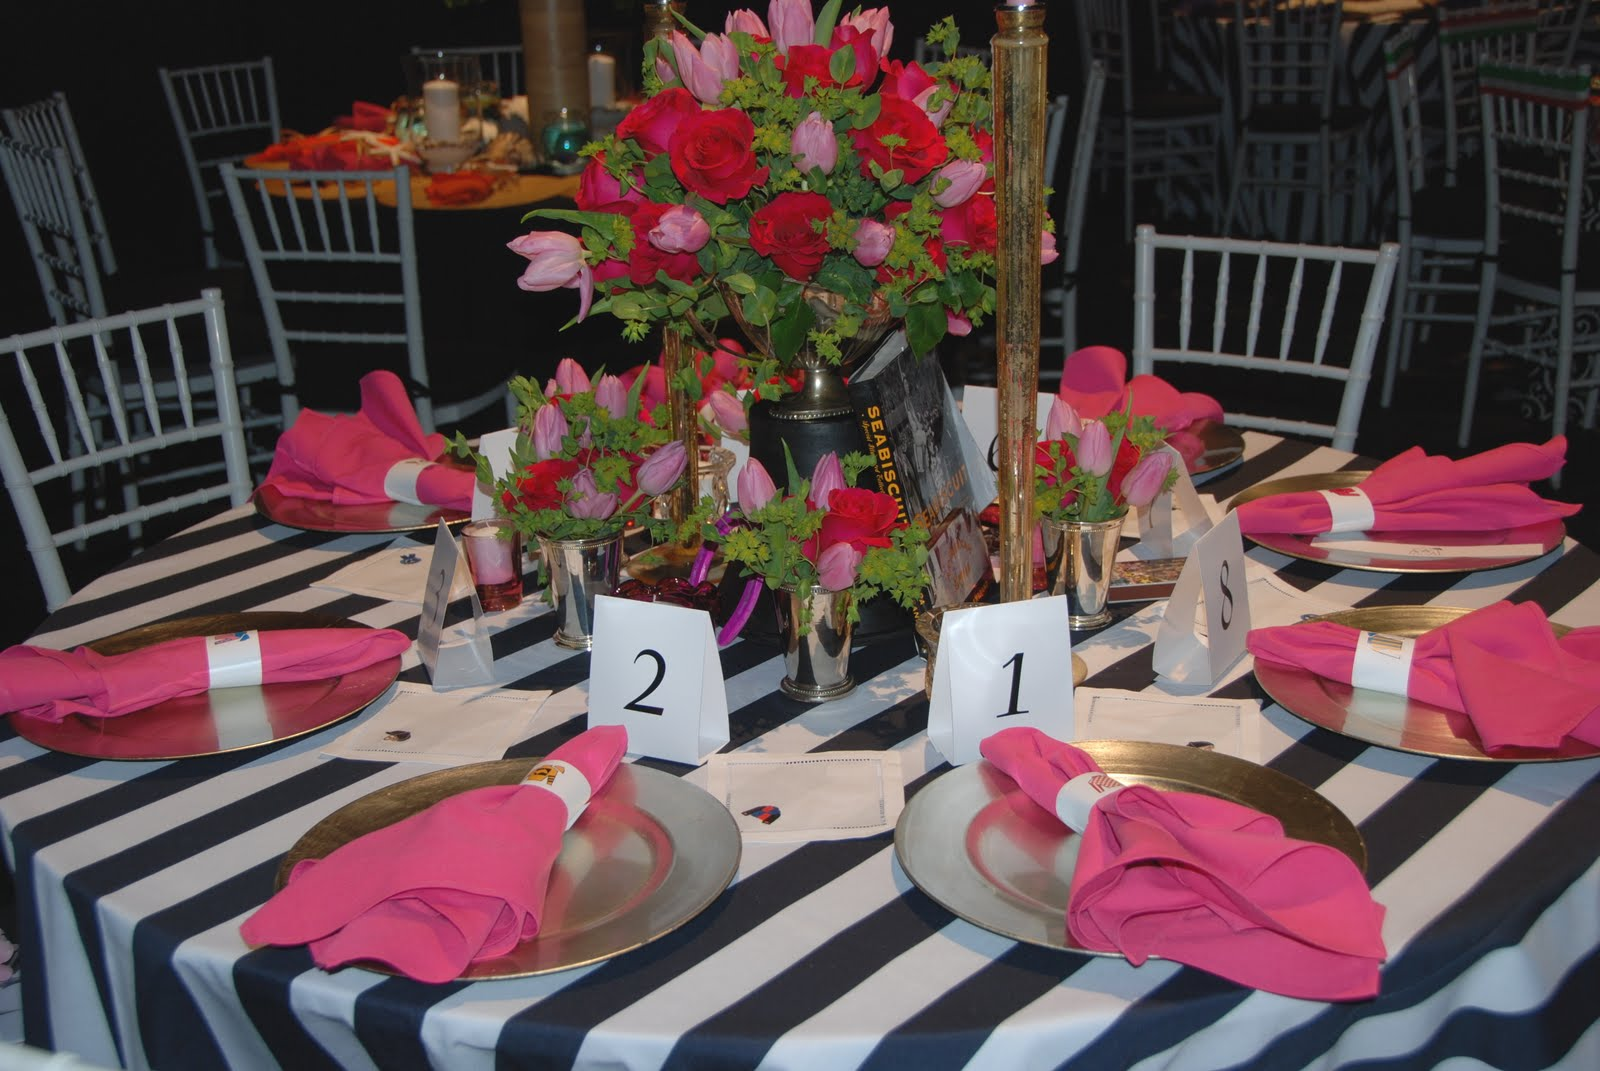 At The End Of The Evening, Guests Took Home A Book About The Kentucky Derby  All Tied Up With Ribbon And A Pink Rose.